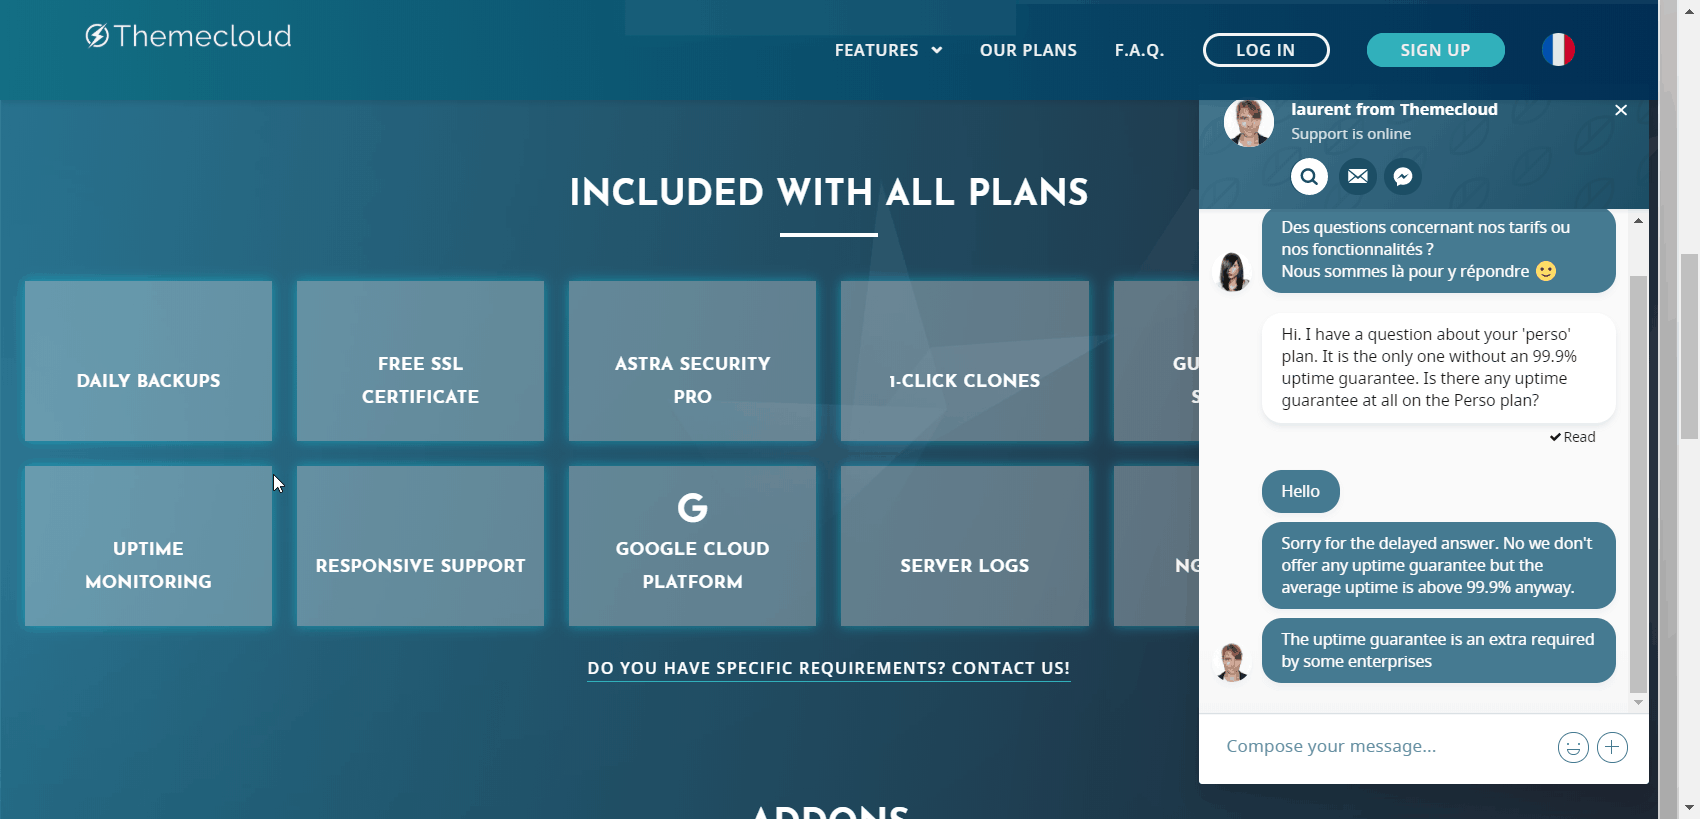 Themecloud.io support chat